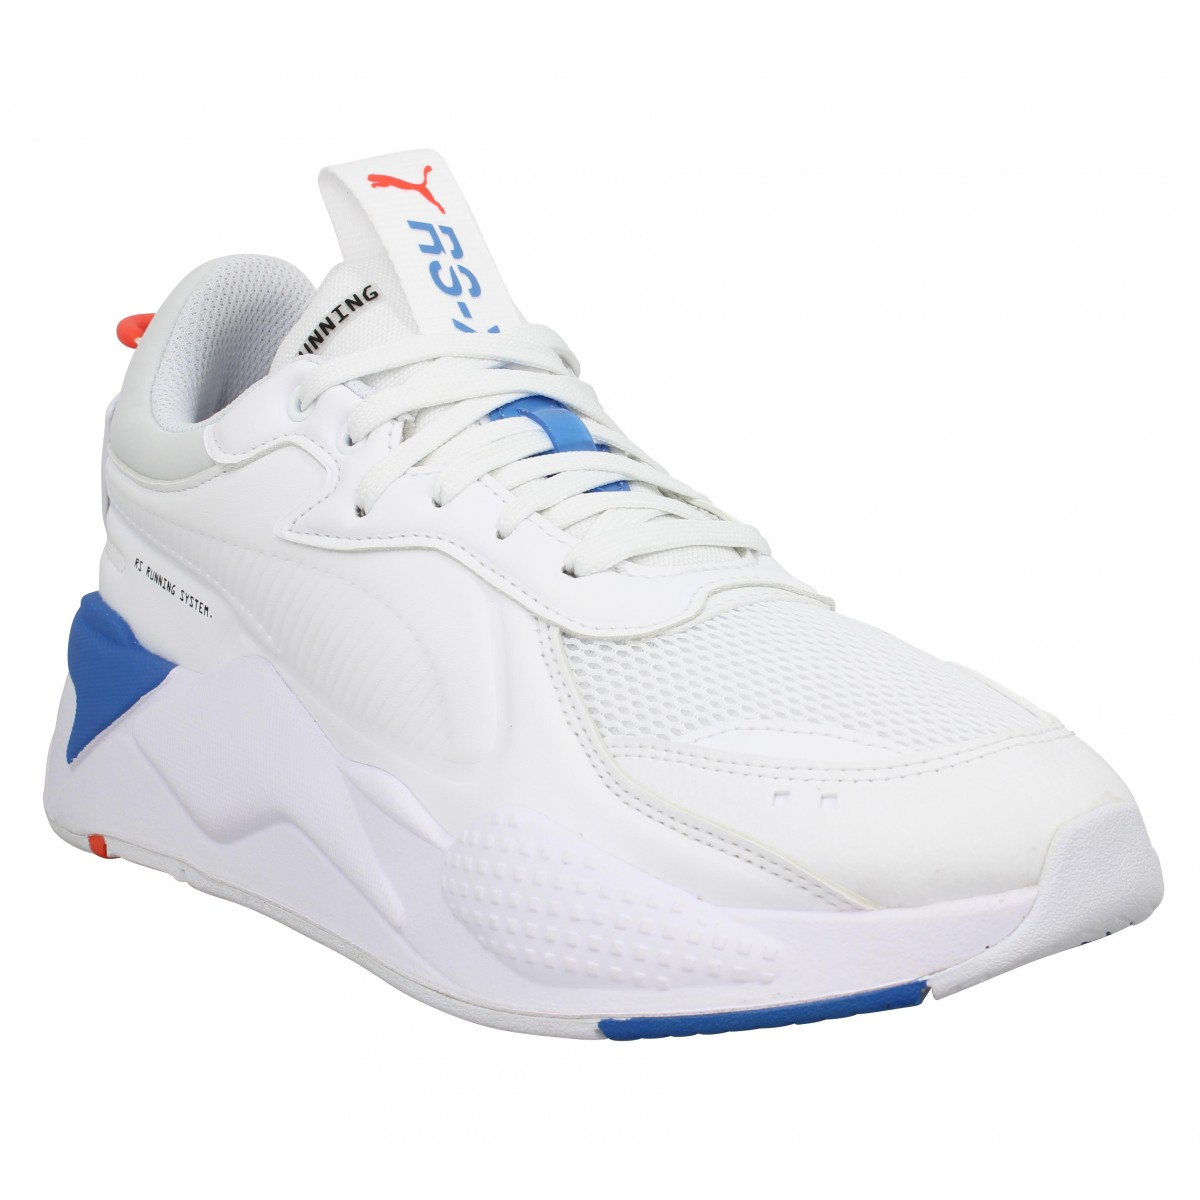 Puma Homme Rs-x Master Toile -40-blanc